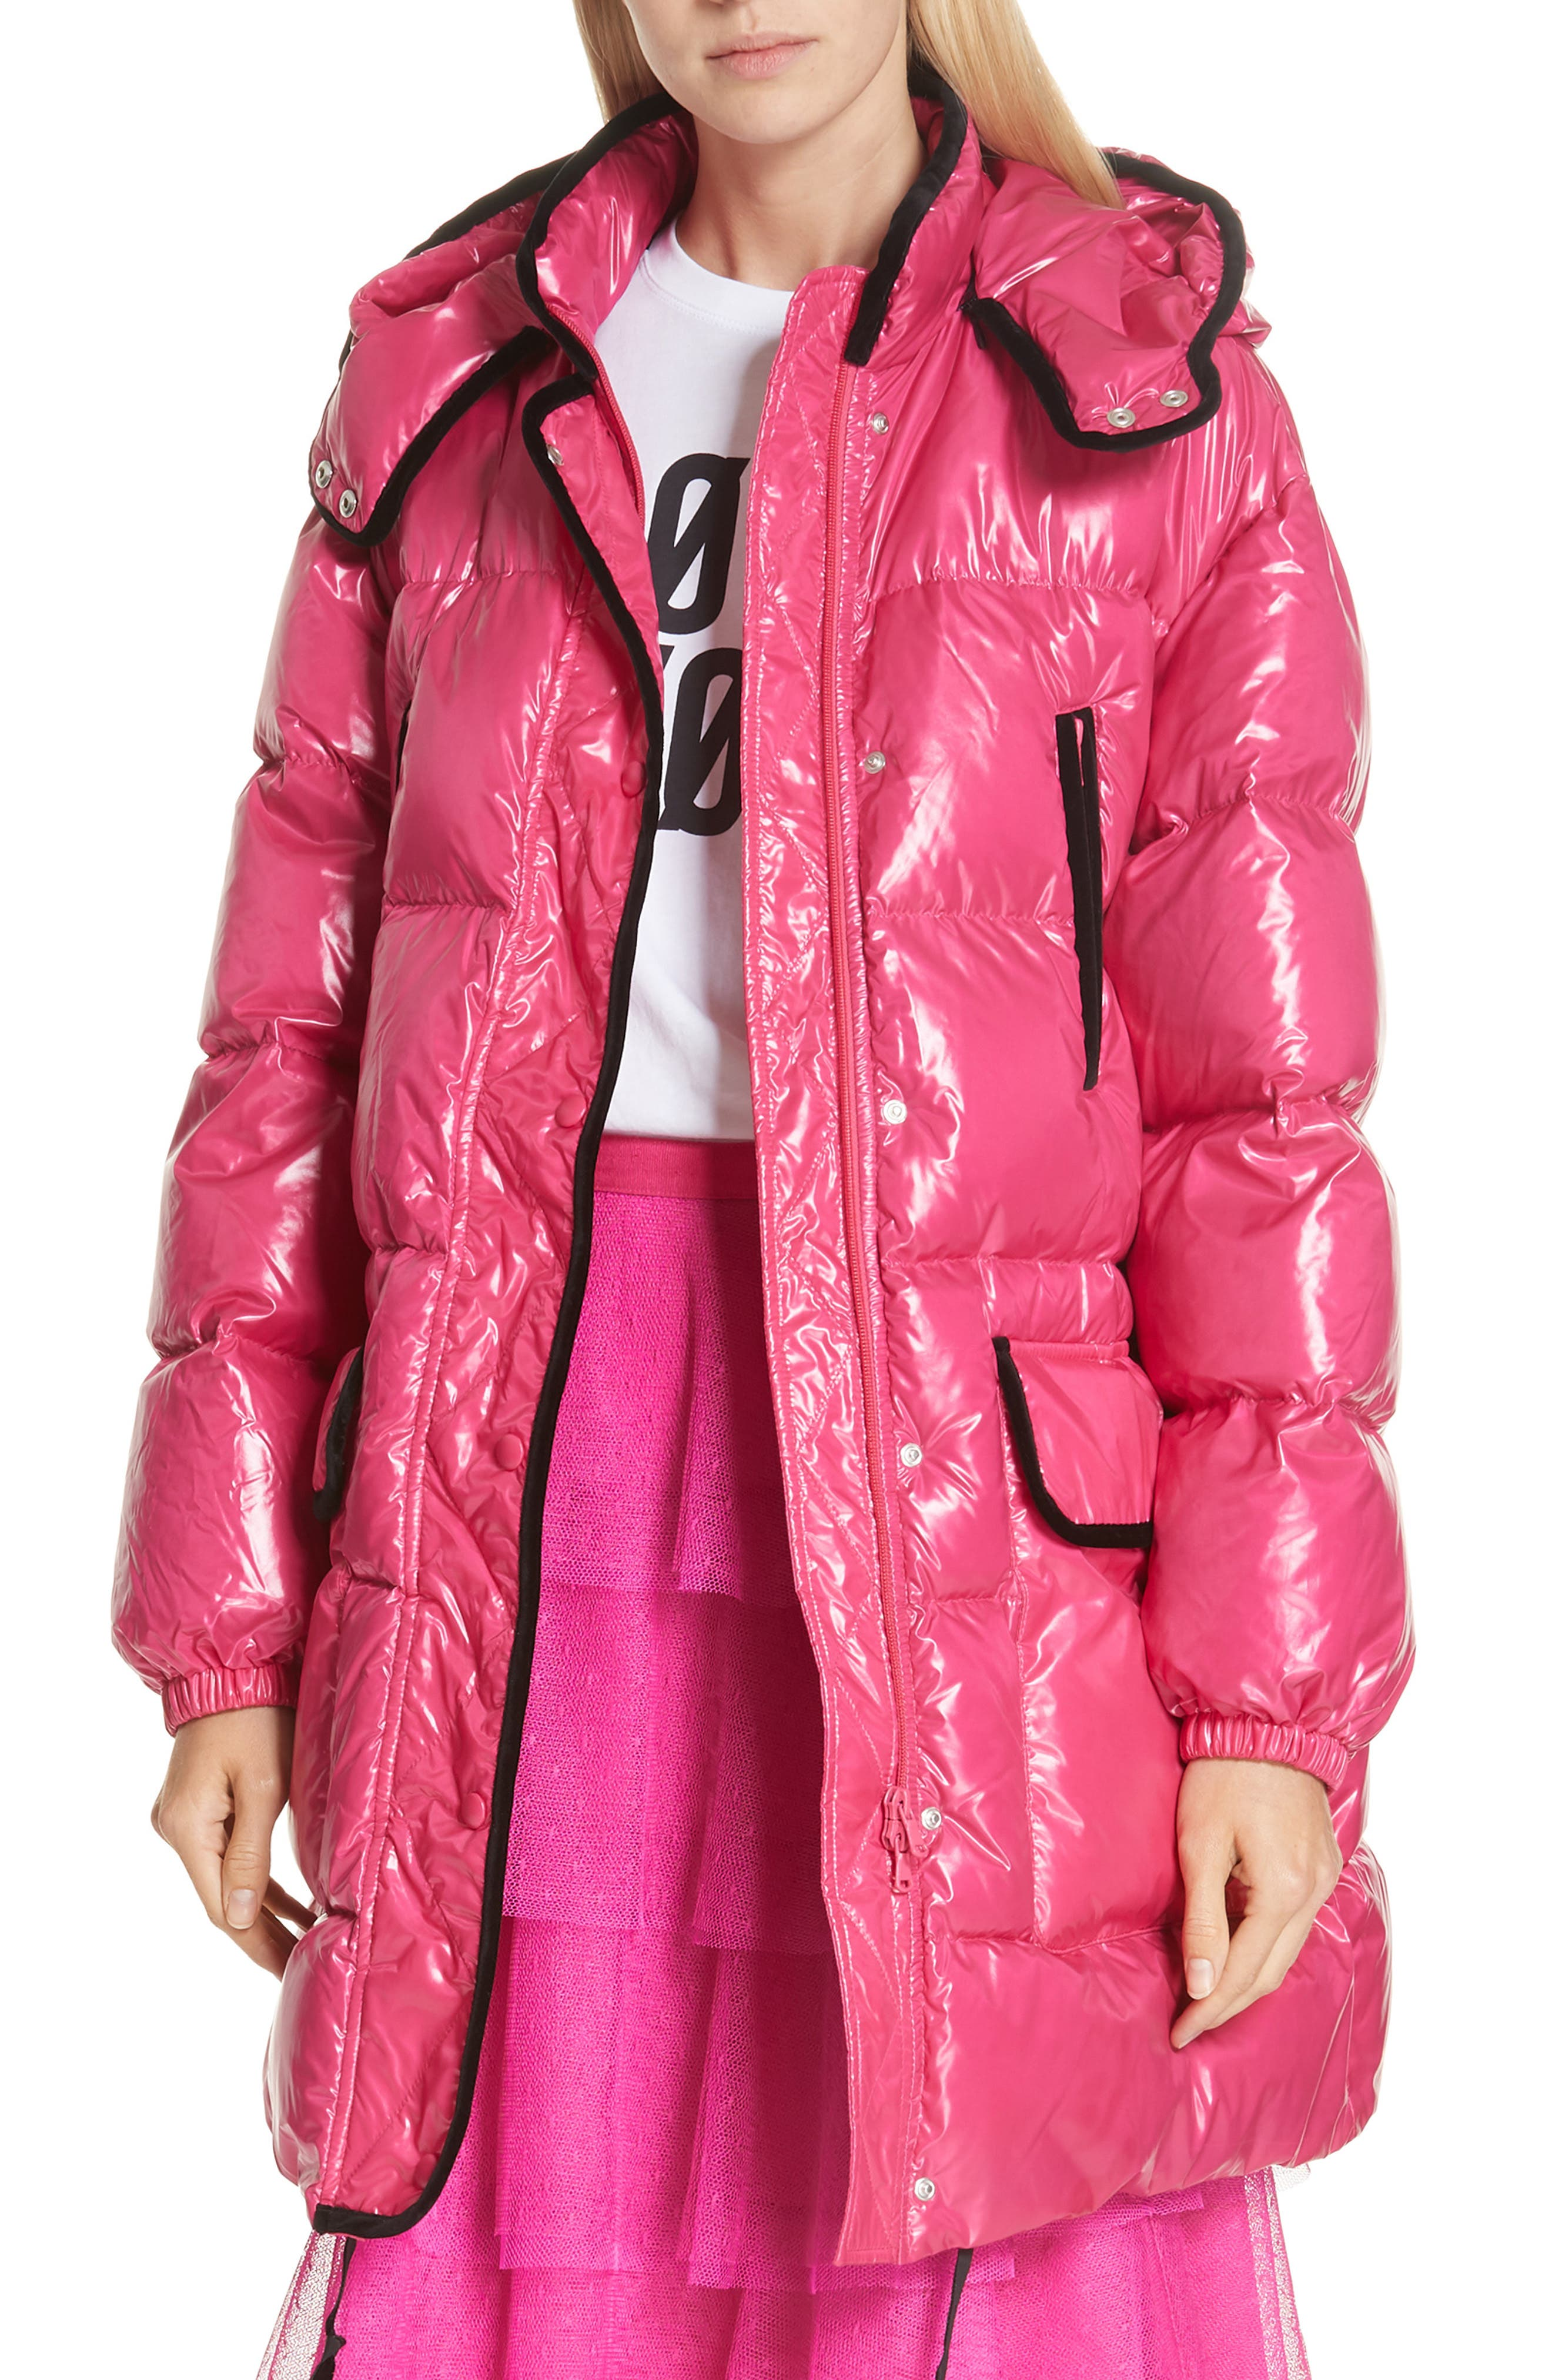 RED VALENTINO,                             Puffer Coat,                             Main thumbnail 1, color,                             650